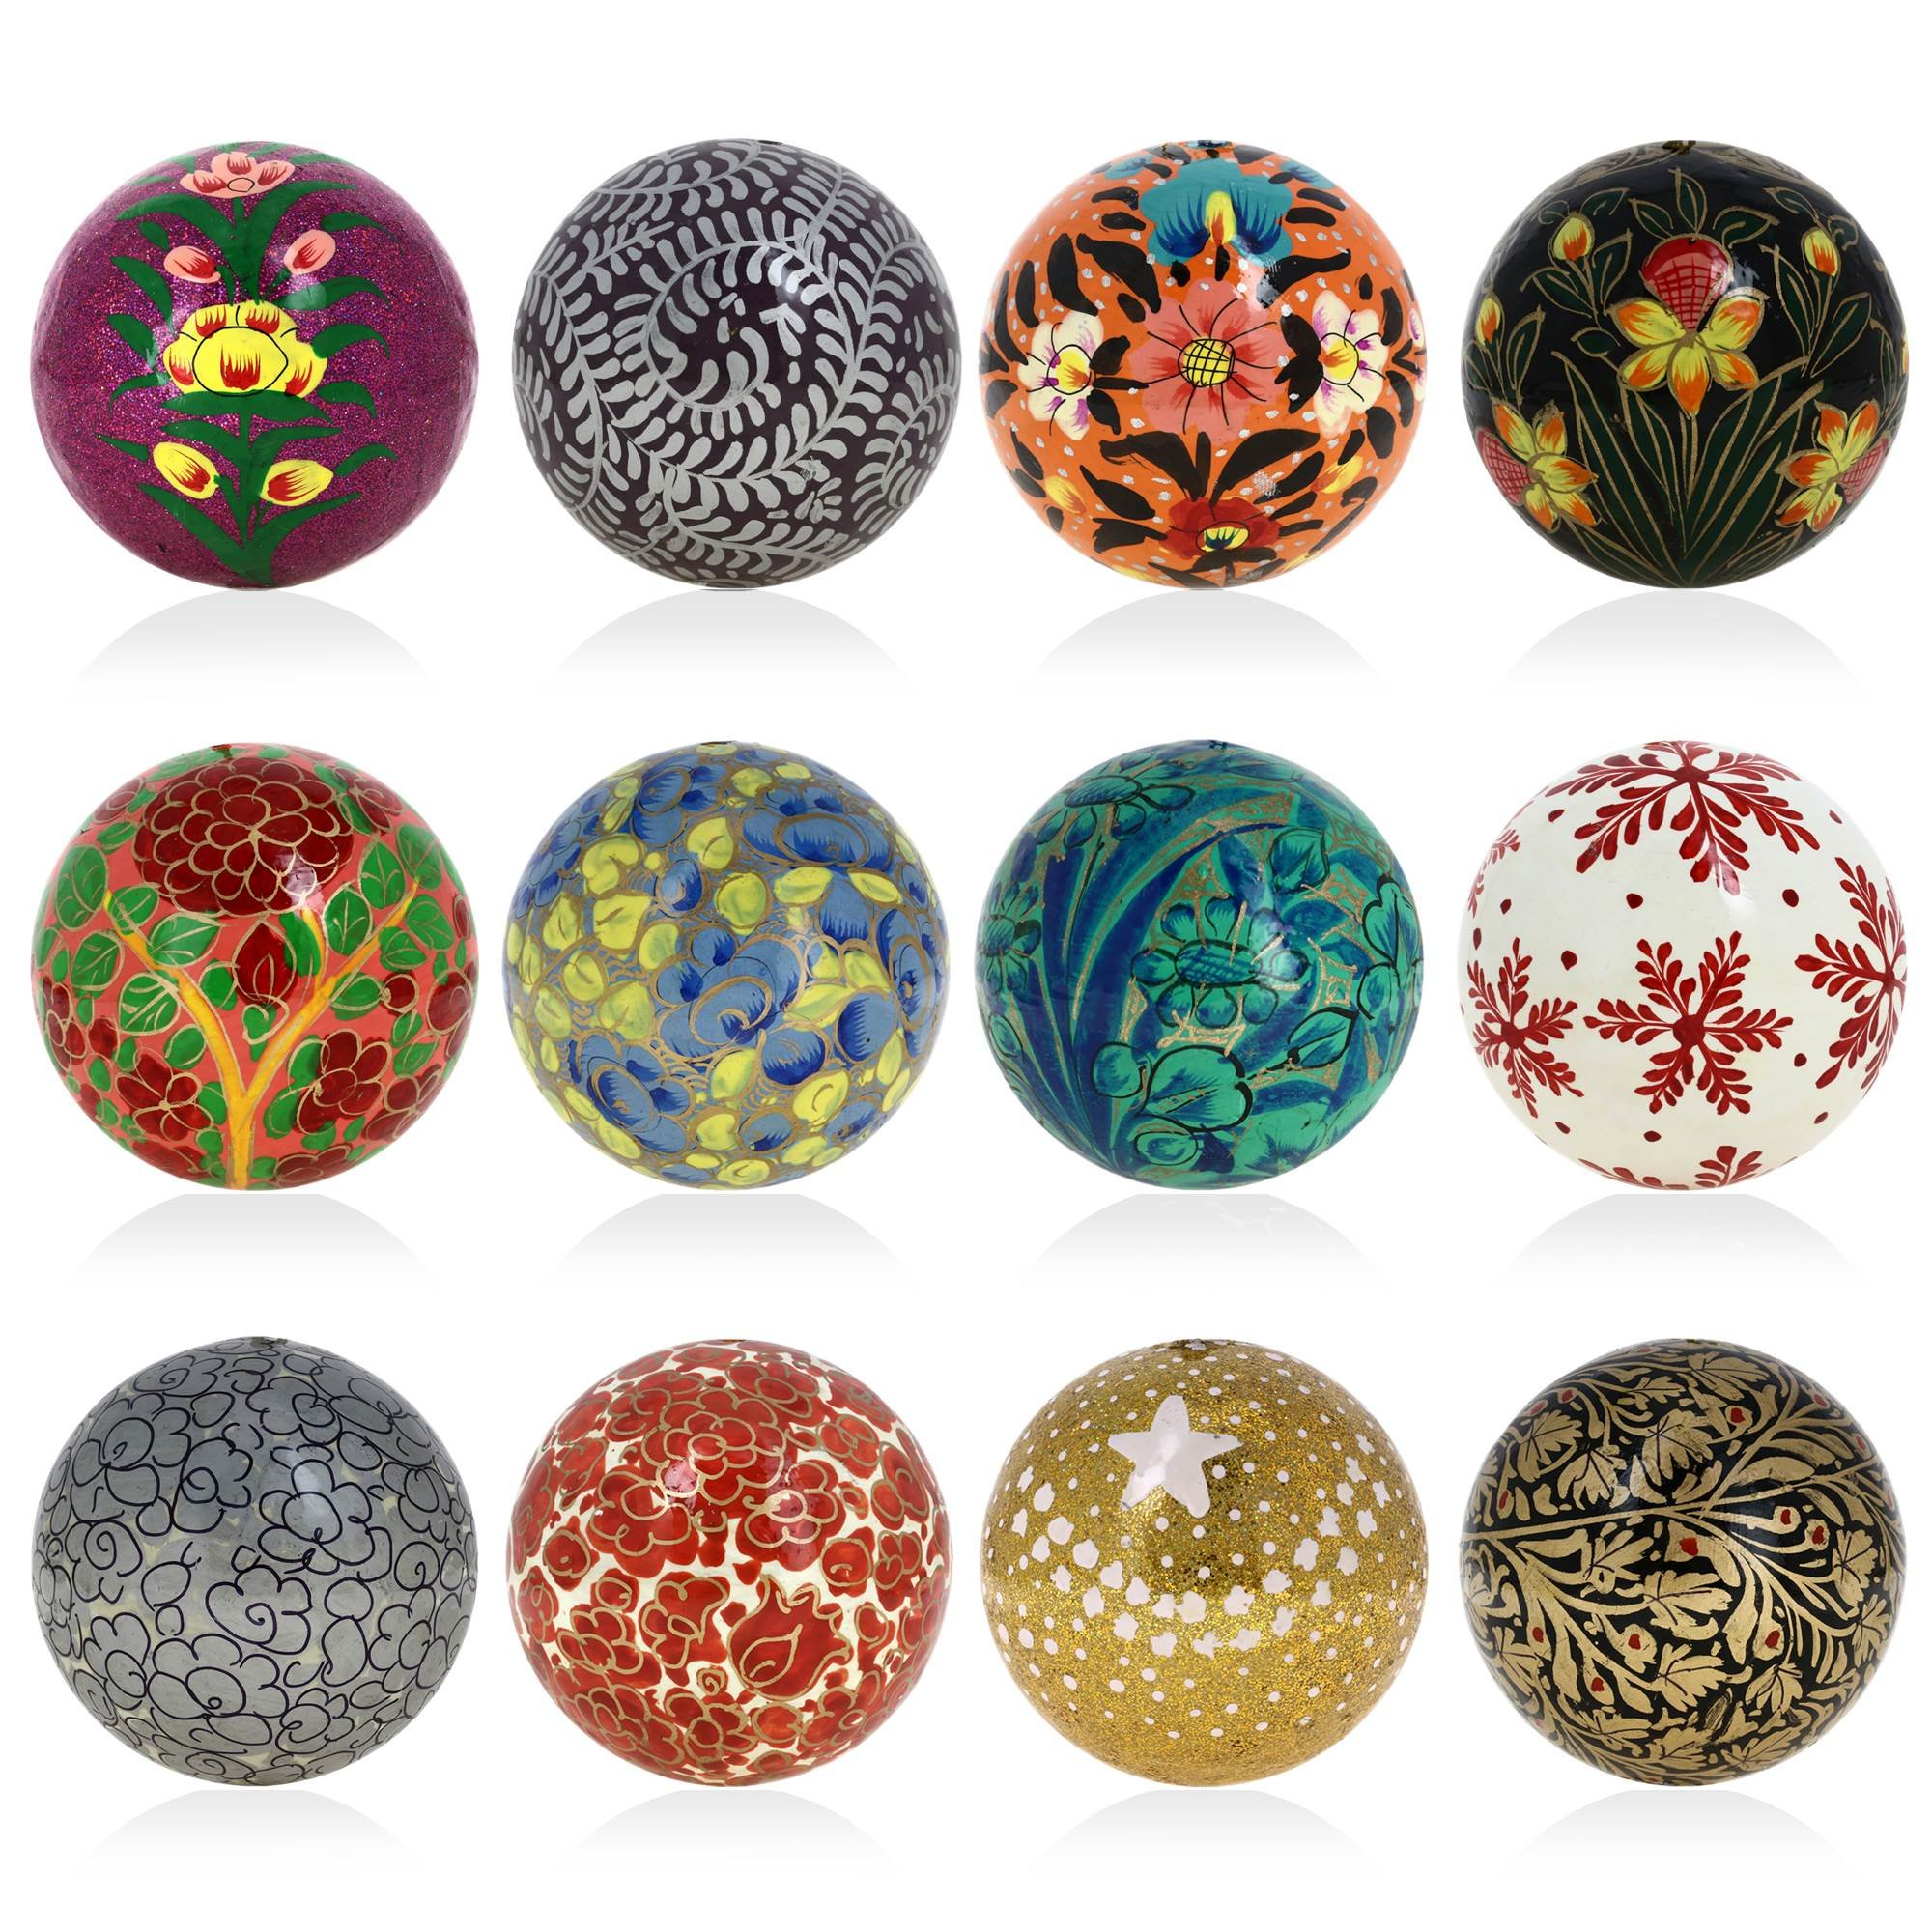 Decor Christmas Ornaments Hanging Handmade Paper Mache Balls 3 Inch Set of 12